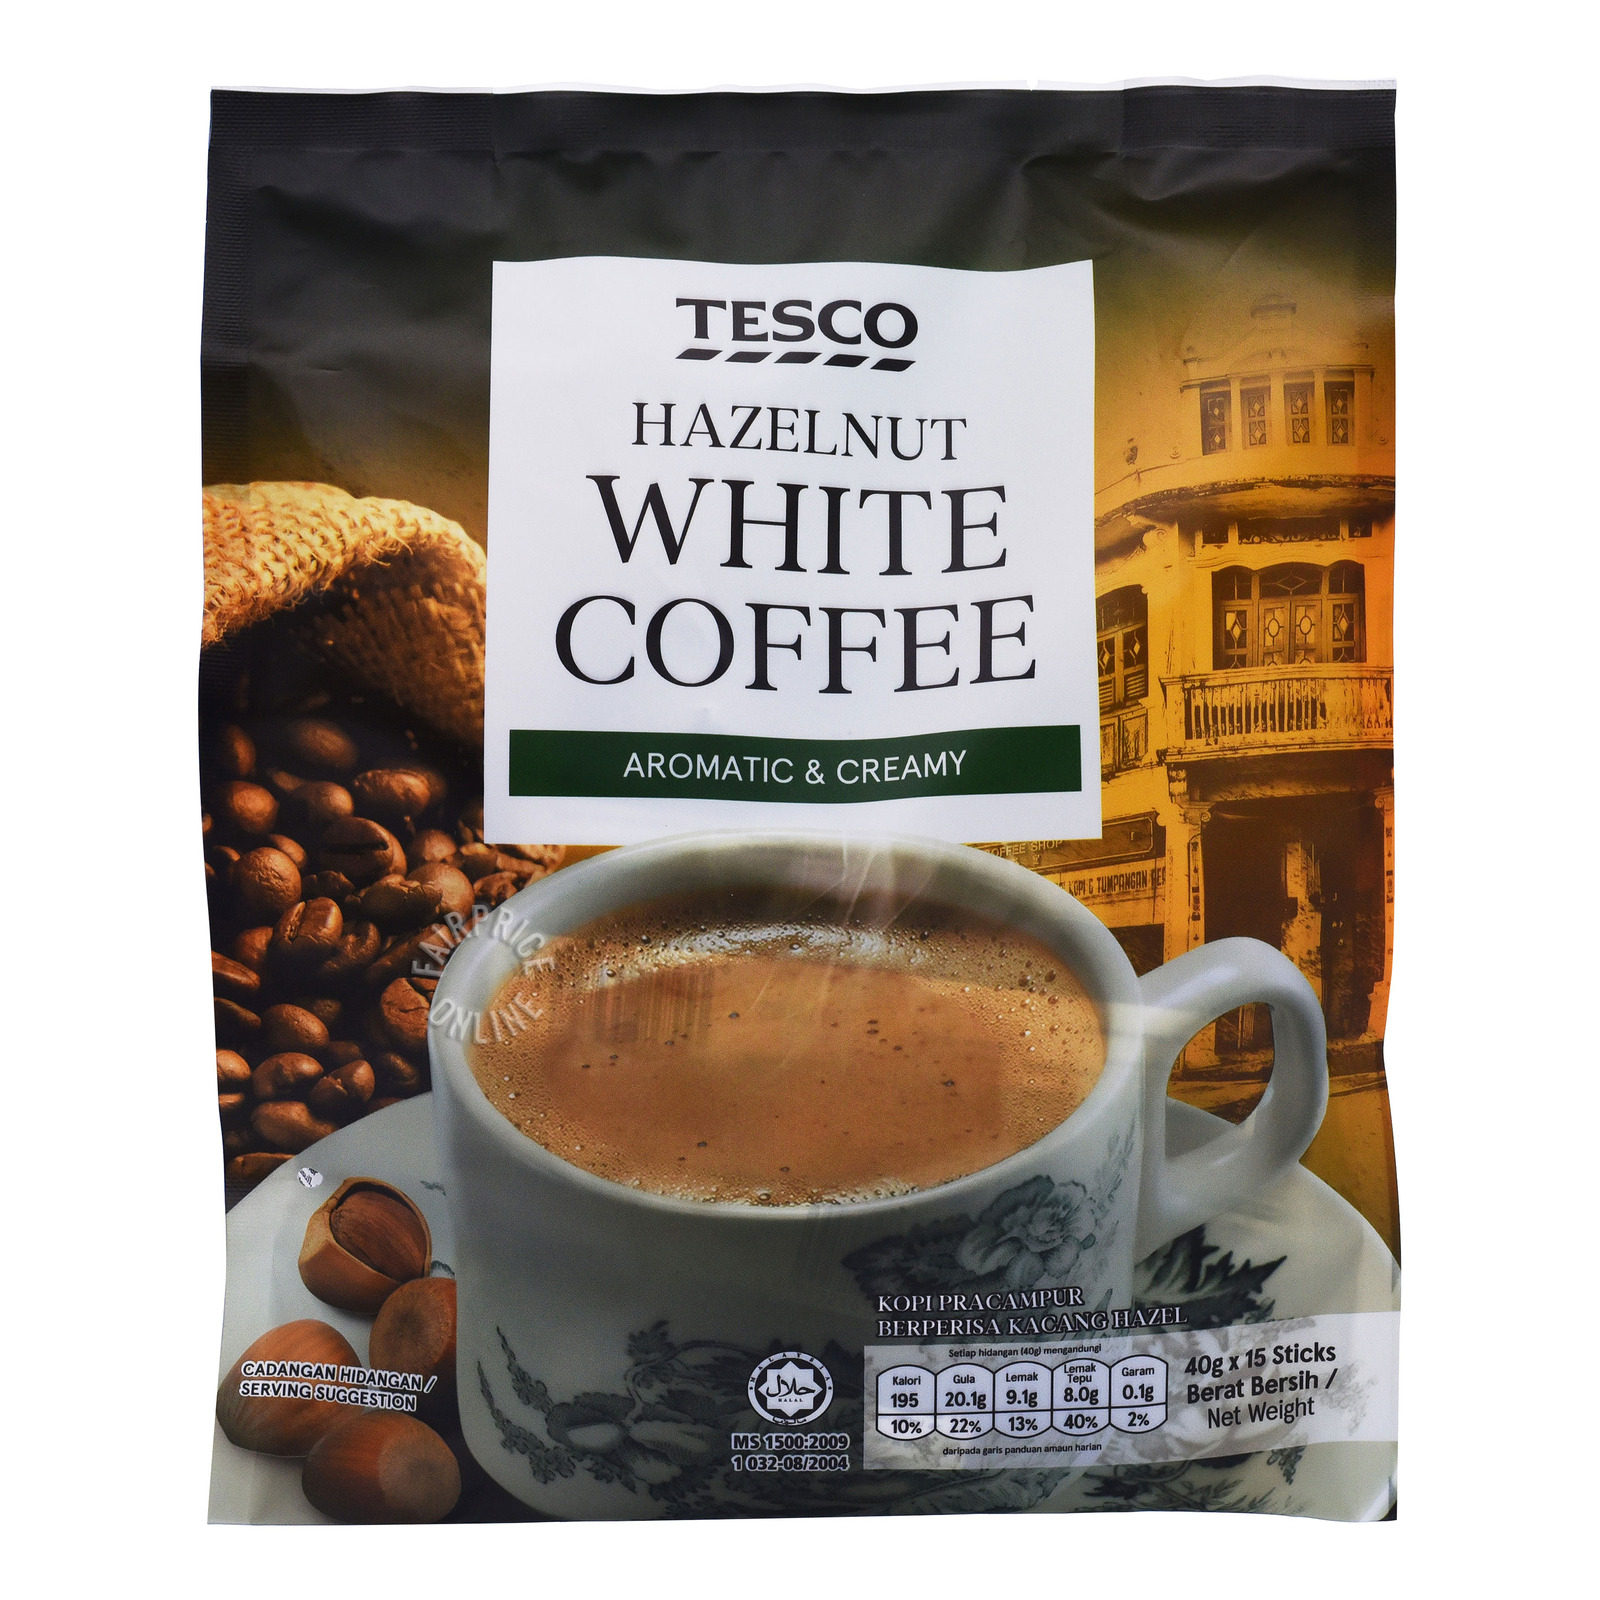 Tesco 3 in 1 Instant White Coffee - Hazelnut